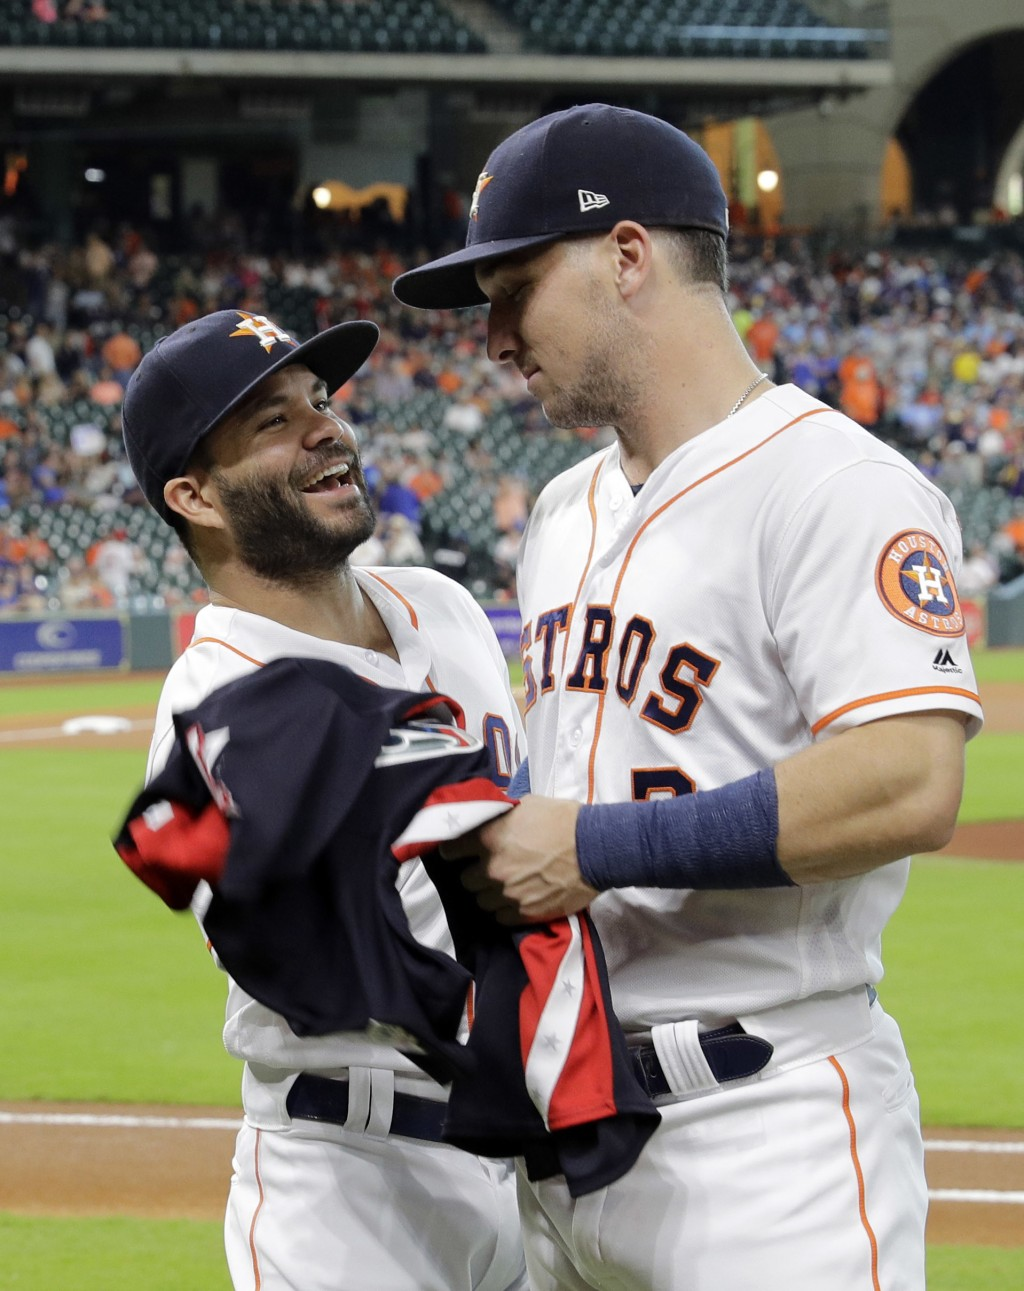 Houston Astros' Jose Altuve, left, jokes with Alex Bregman after they were presented their All-Star jerseys before a baseball game against the Oakland...